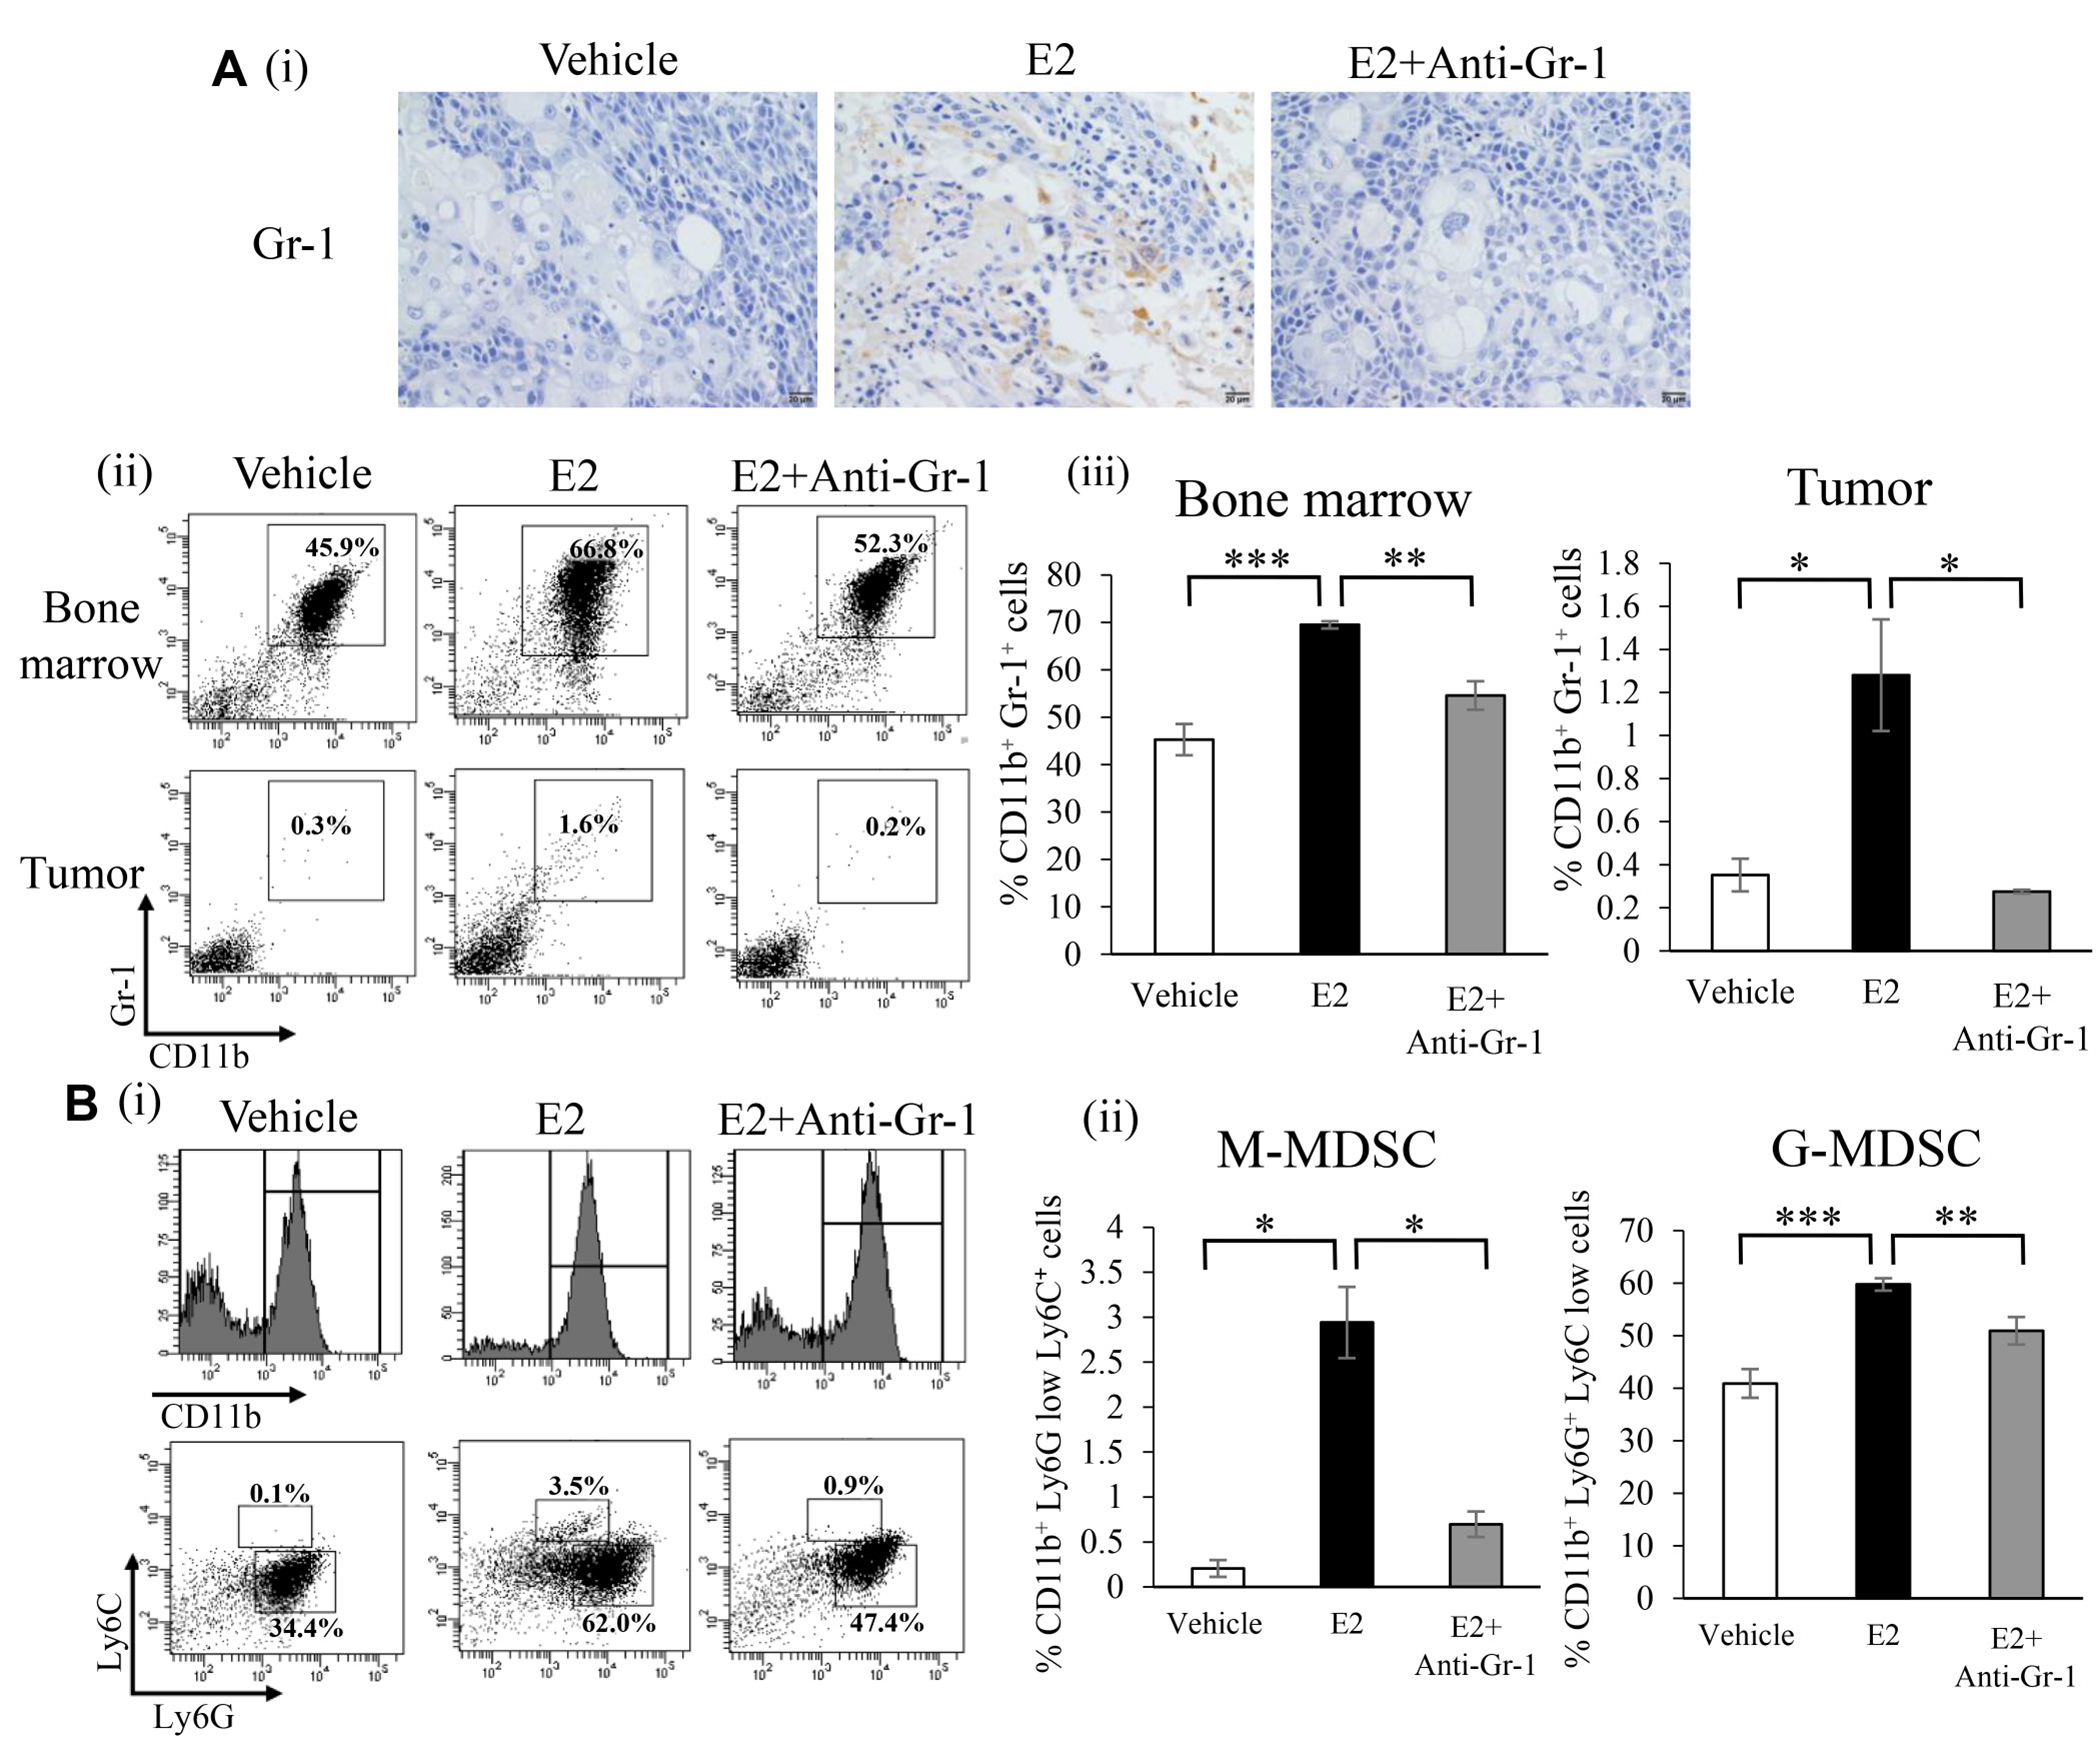 Effects of an exogenous E2 treatment on the induction of MDSC in vivo.